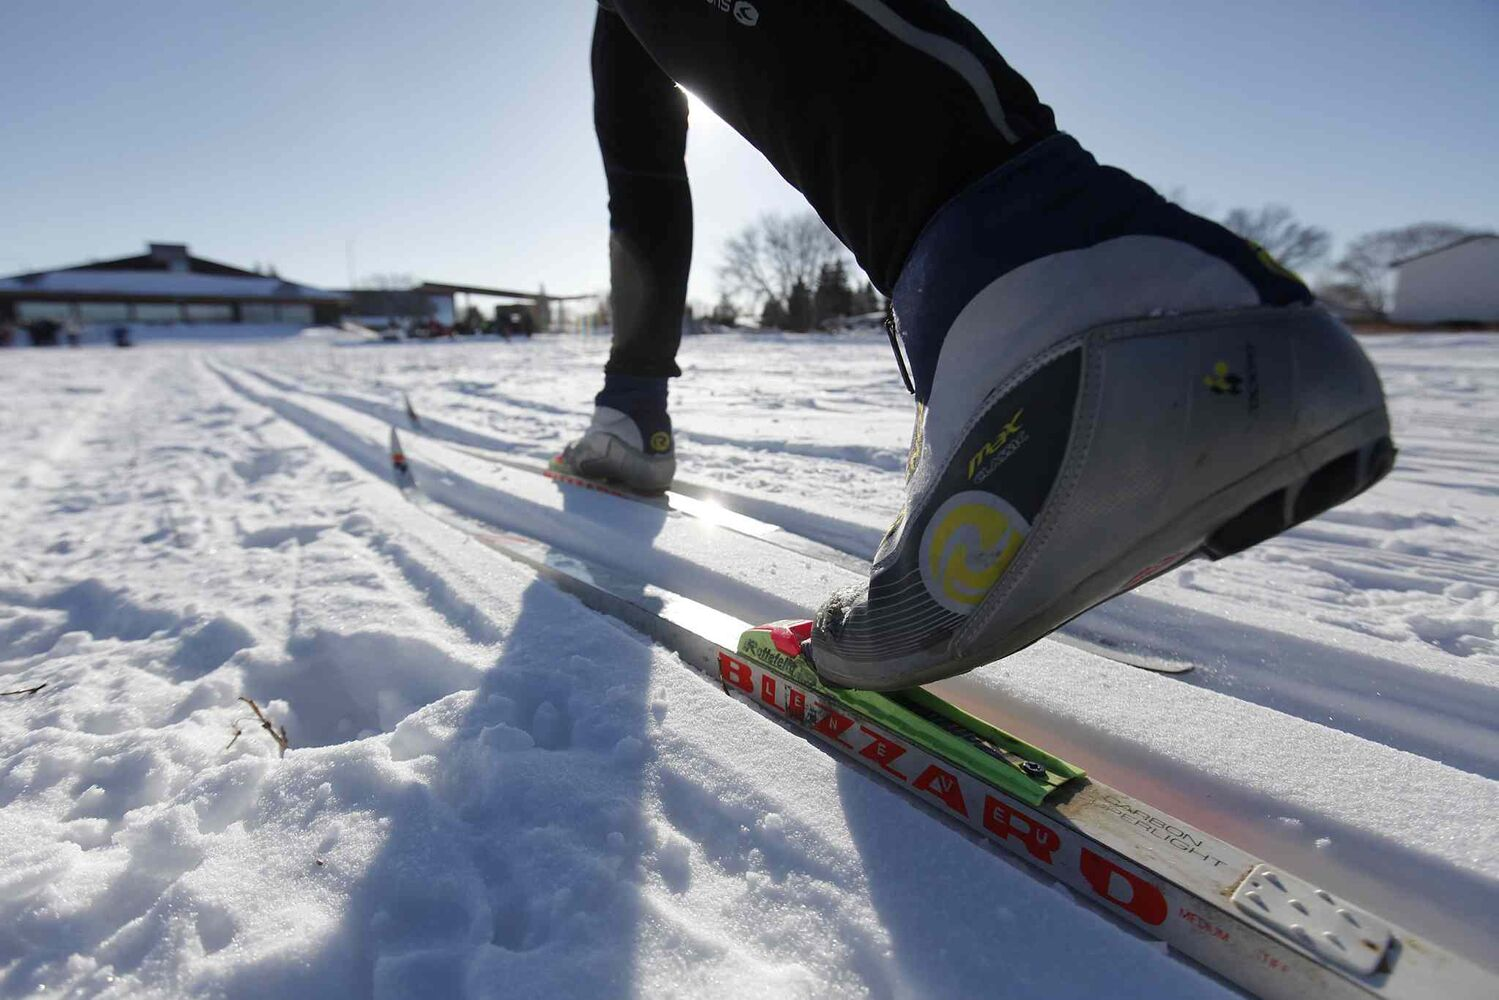 A cross-country skier takes part in the fifth annual Snow Trek at Living Prairie Museum in Winnipeg Sunday. Participants came out and enjoyed cross-country skiing, snowshoeing, geocaching and snow art. (JOHN WOODS / WINNIPEG FREE PRESS)